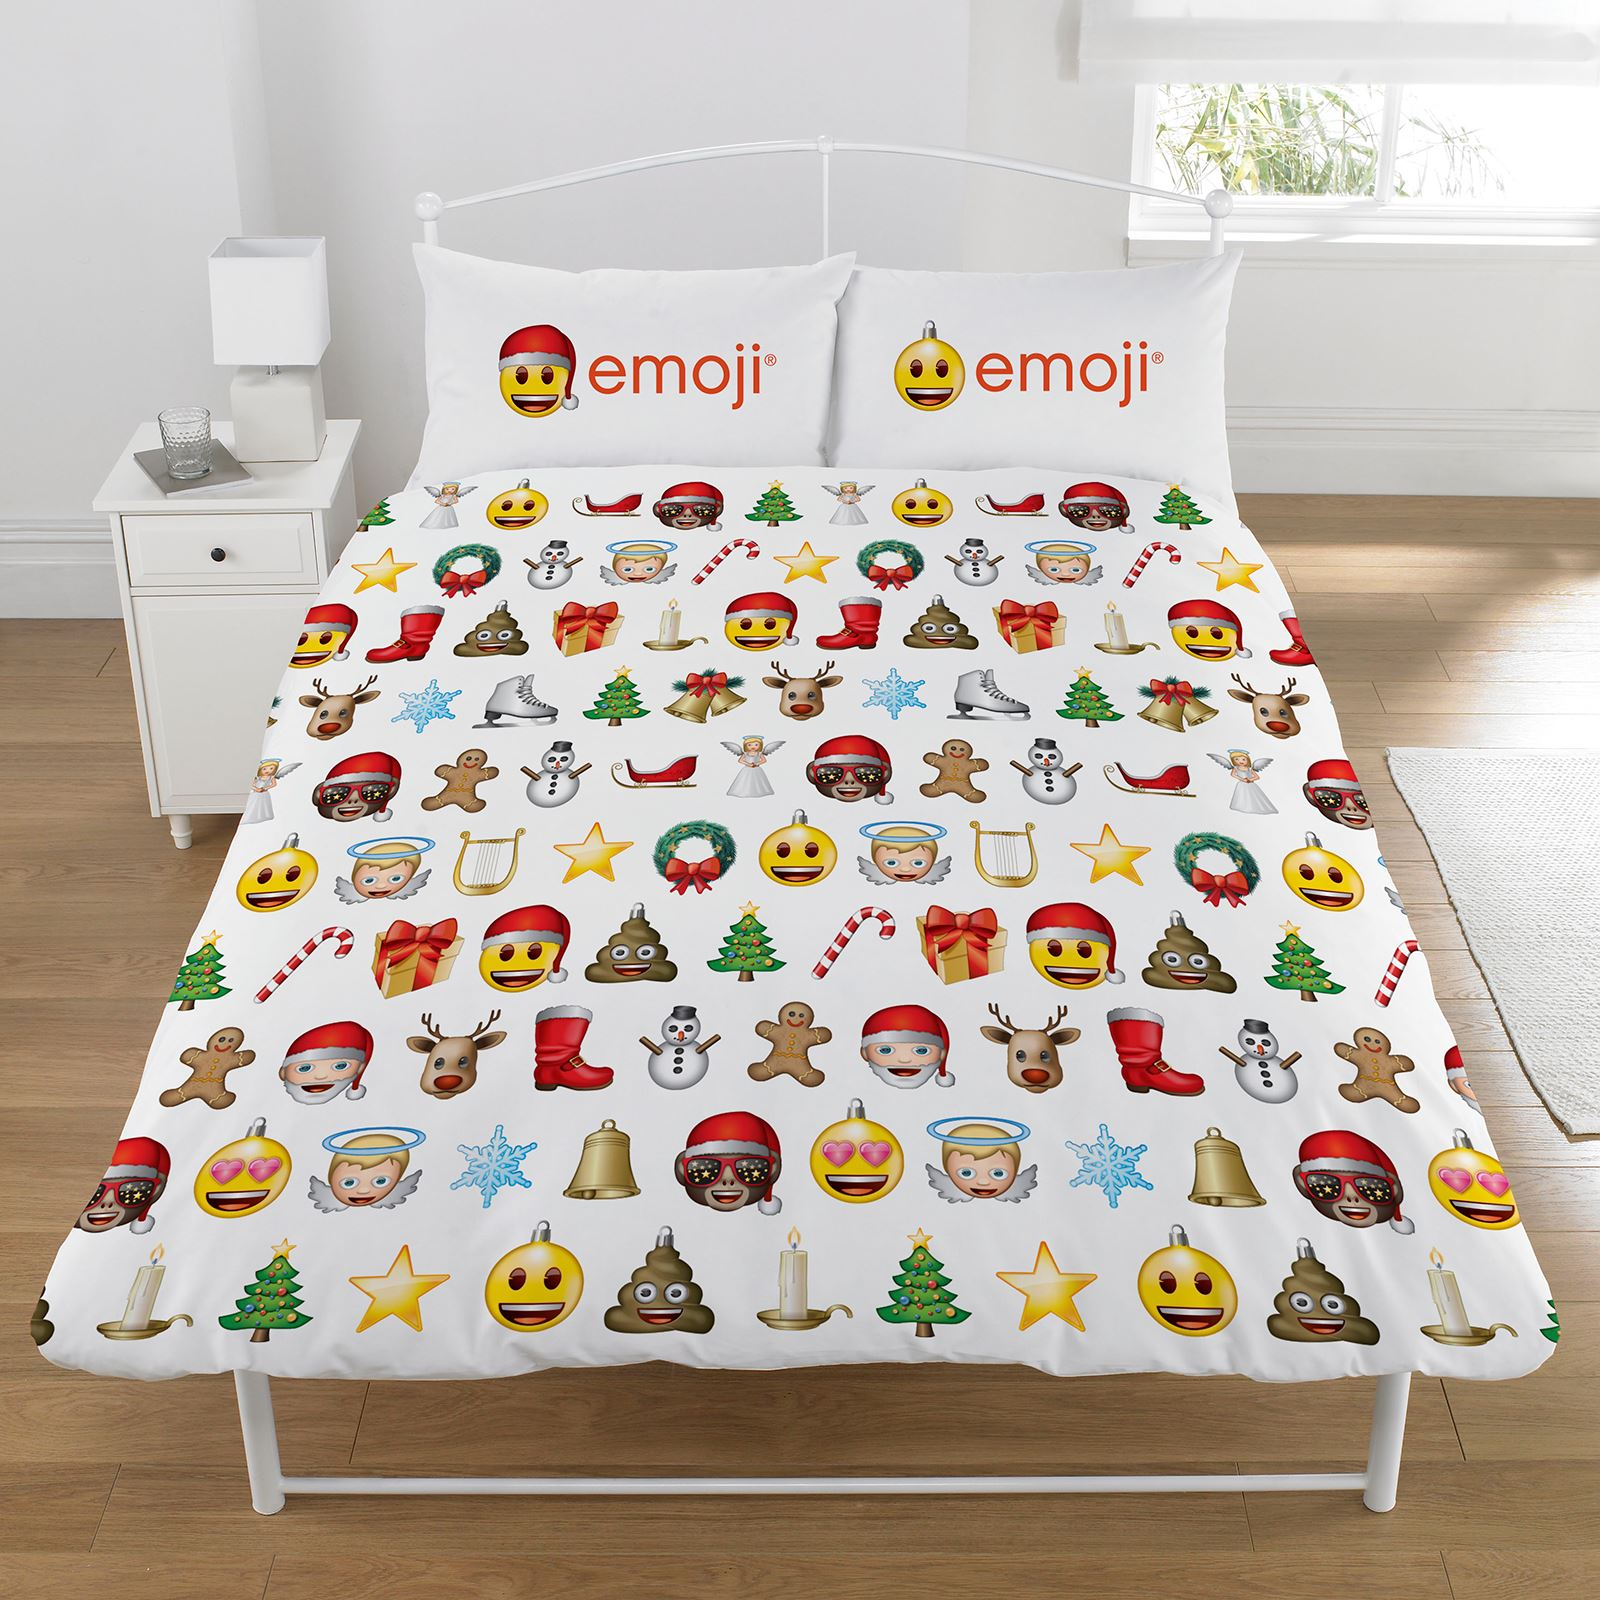 kinder diesney charakter doppelbett bettw sche sets marvel paw patrol emoji ebay. Black Bedroom Furniture Sets. Home Design Ideas